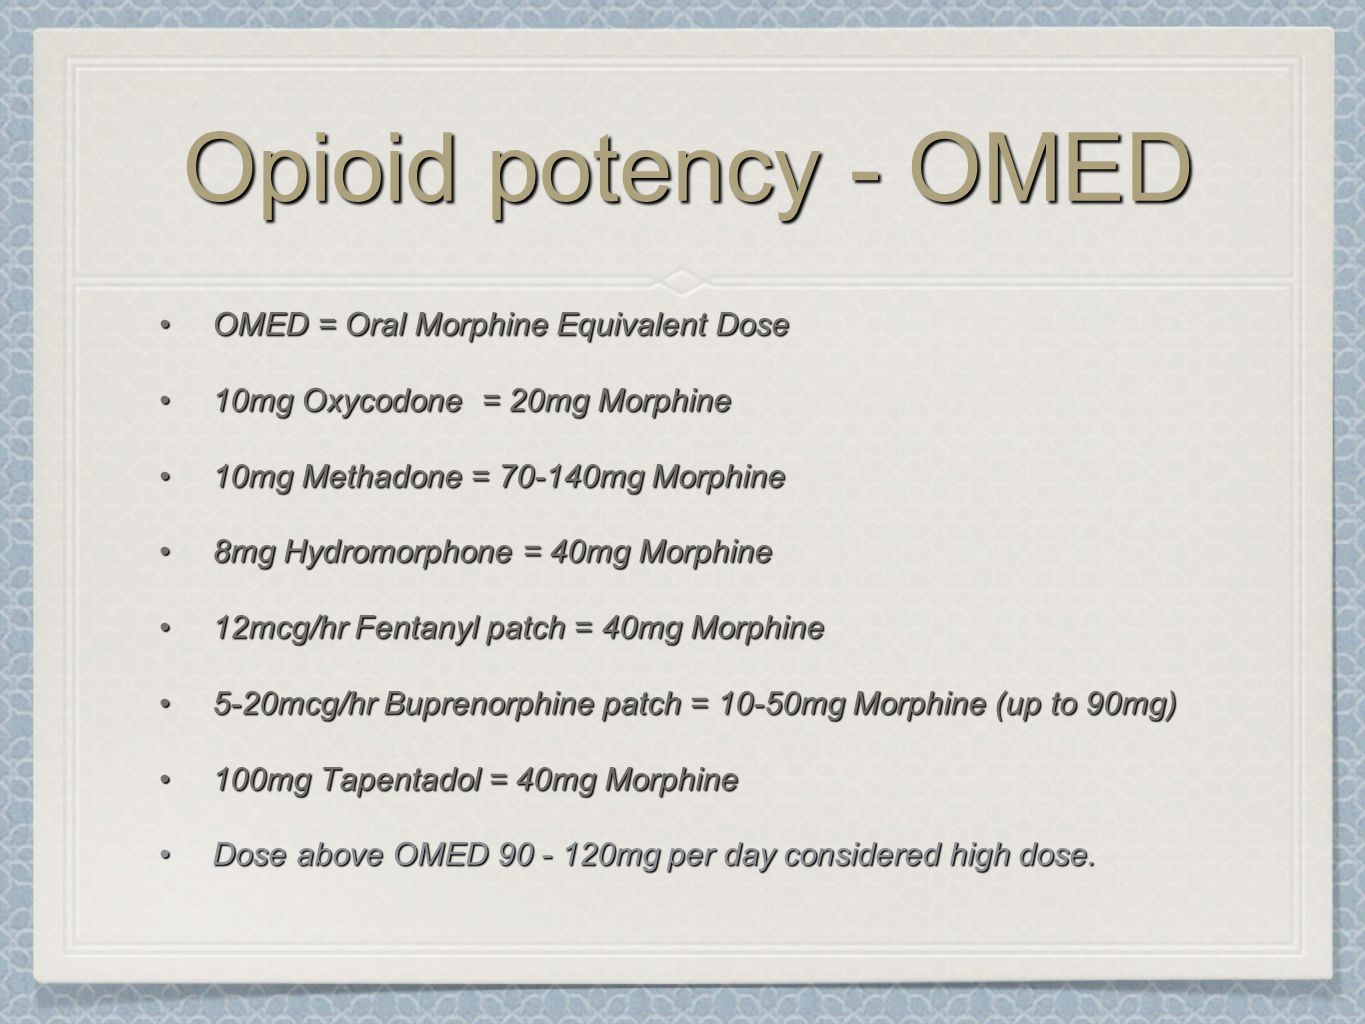 Opioid potency - OMED OMED = Oral Morphine Equivalent Dose